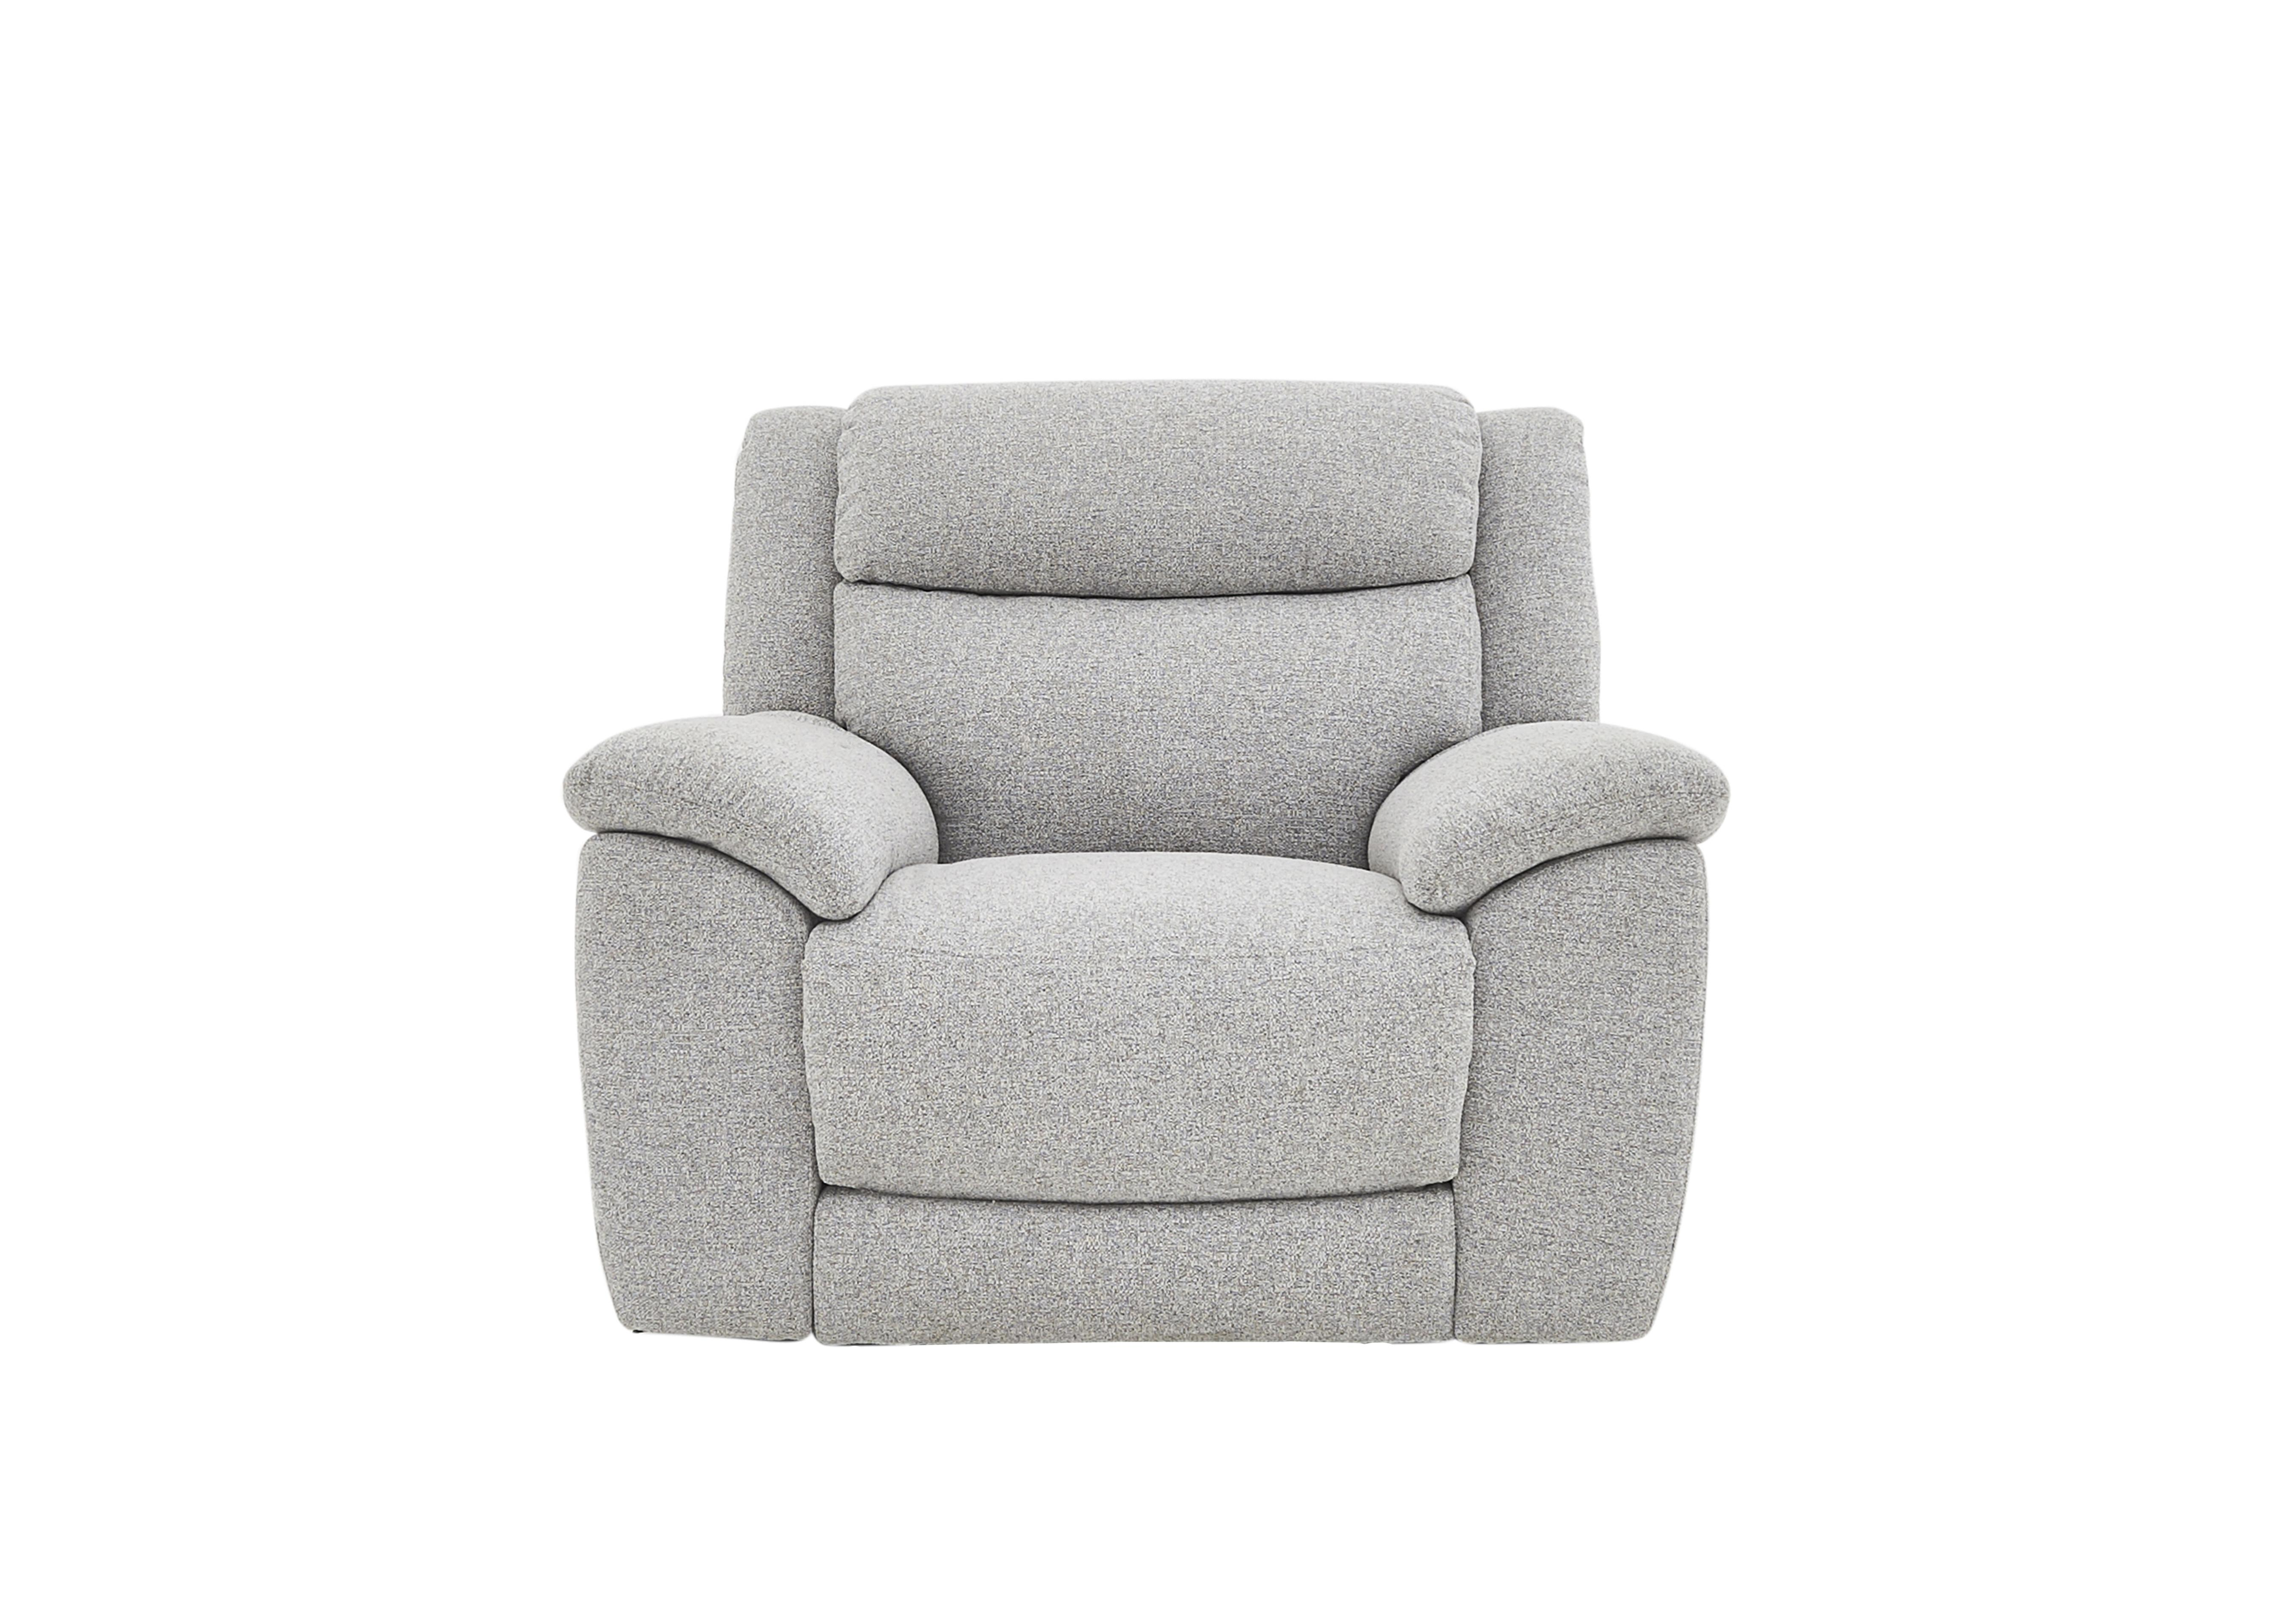 Fabric Recliner armchairs u2013 Furniture Village - Furniture Village